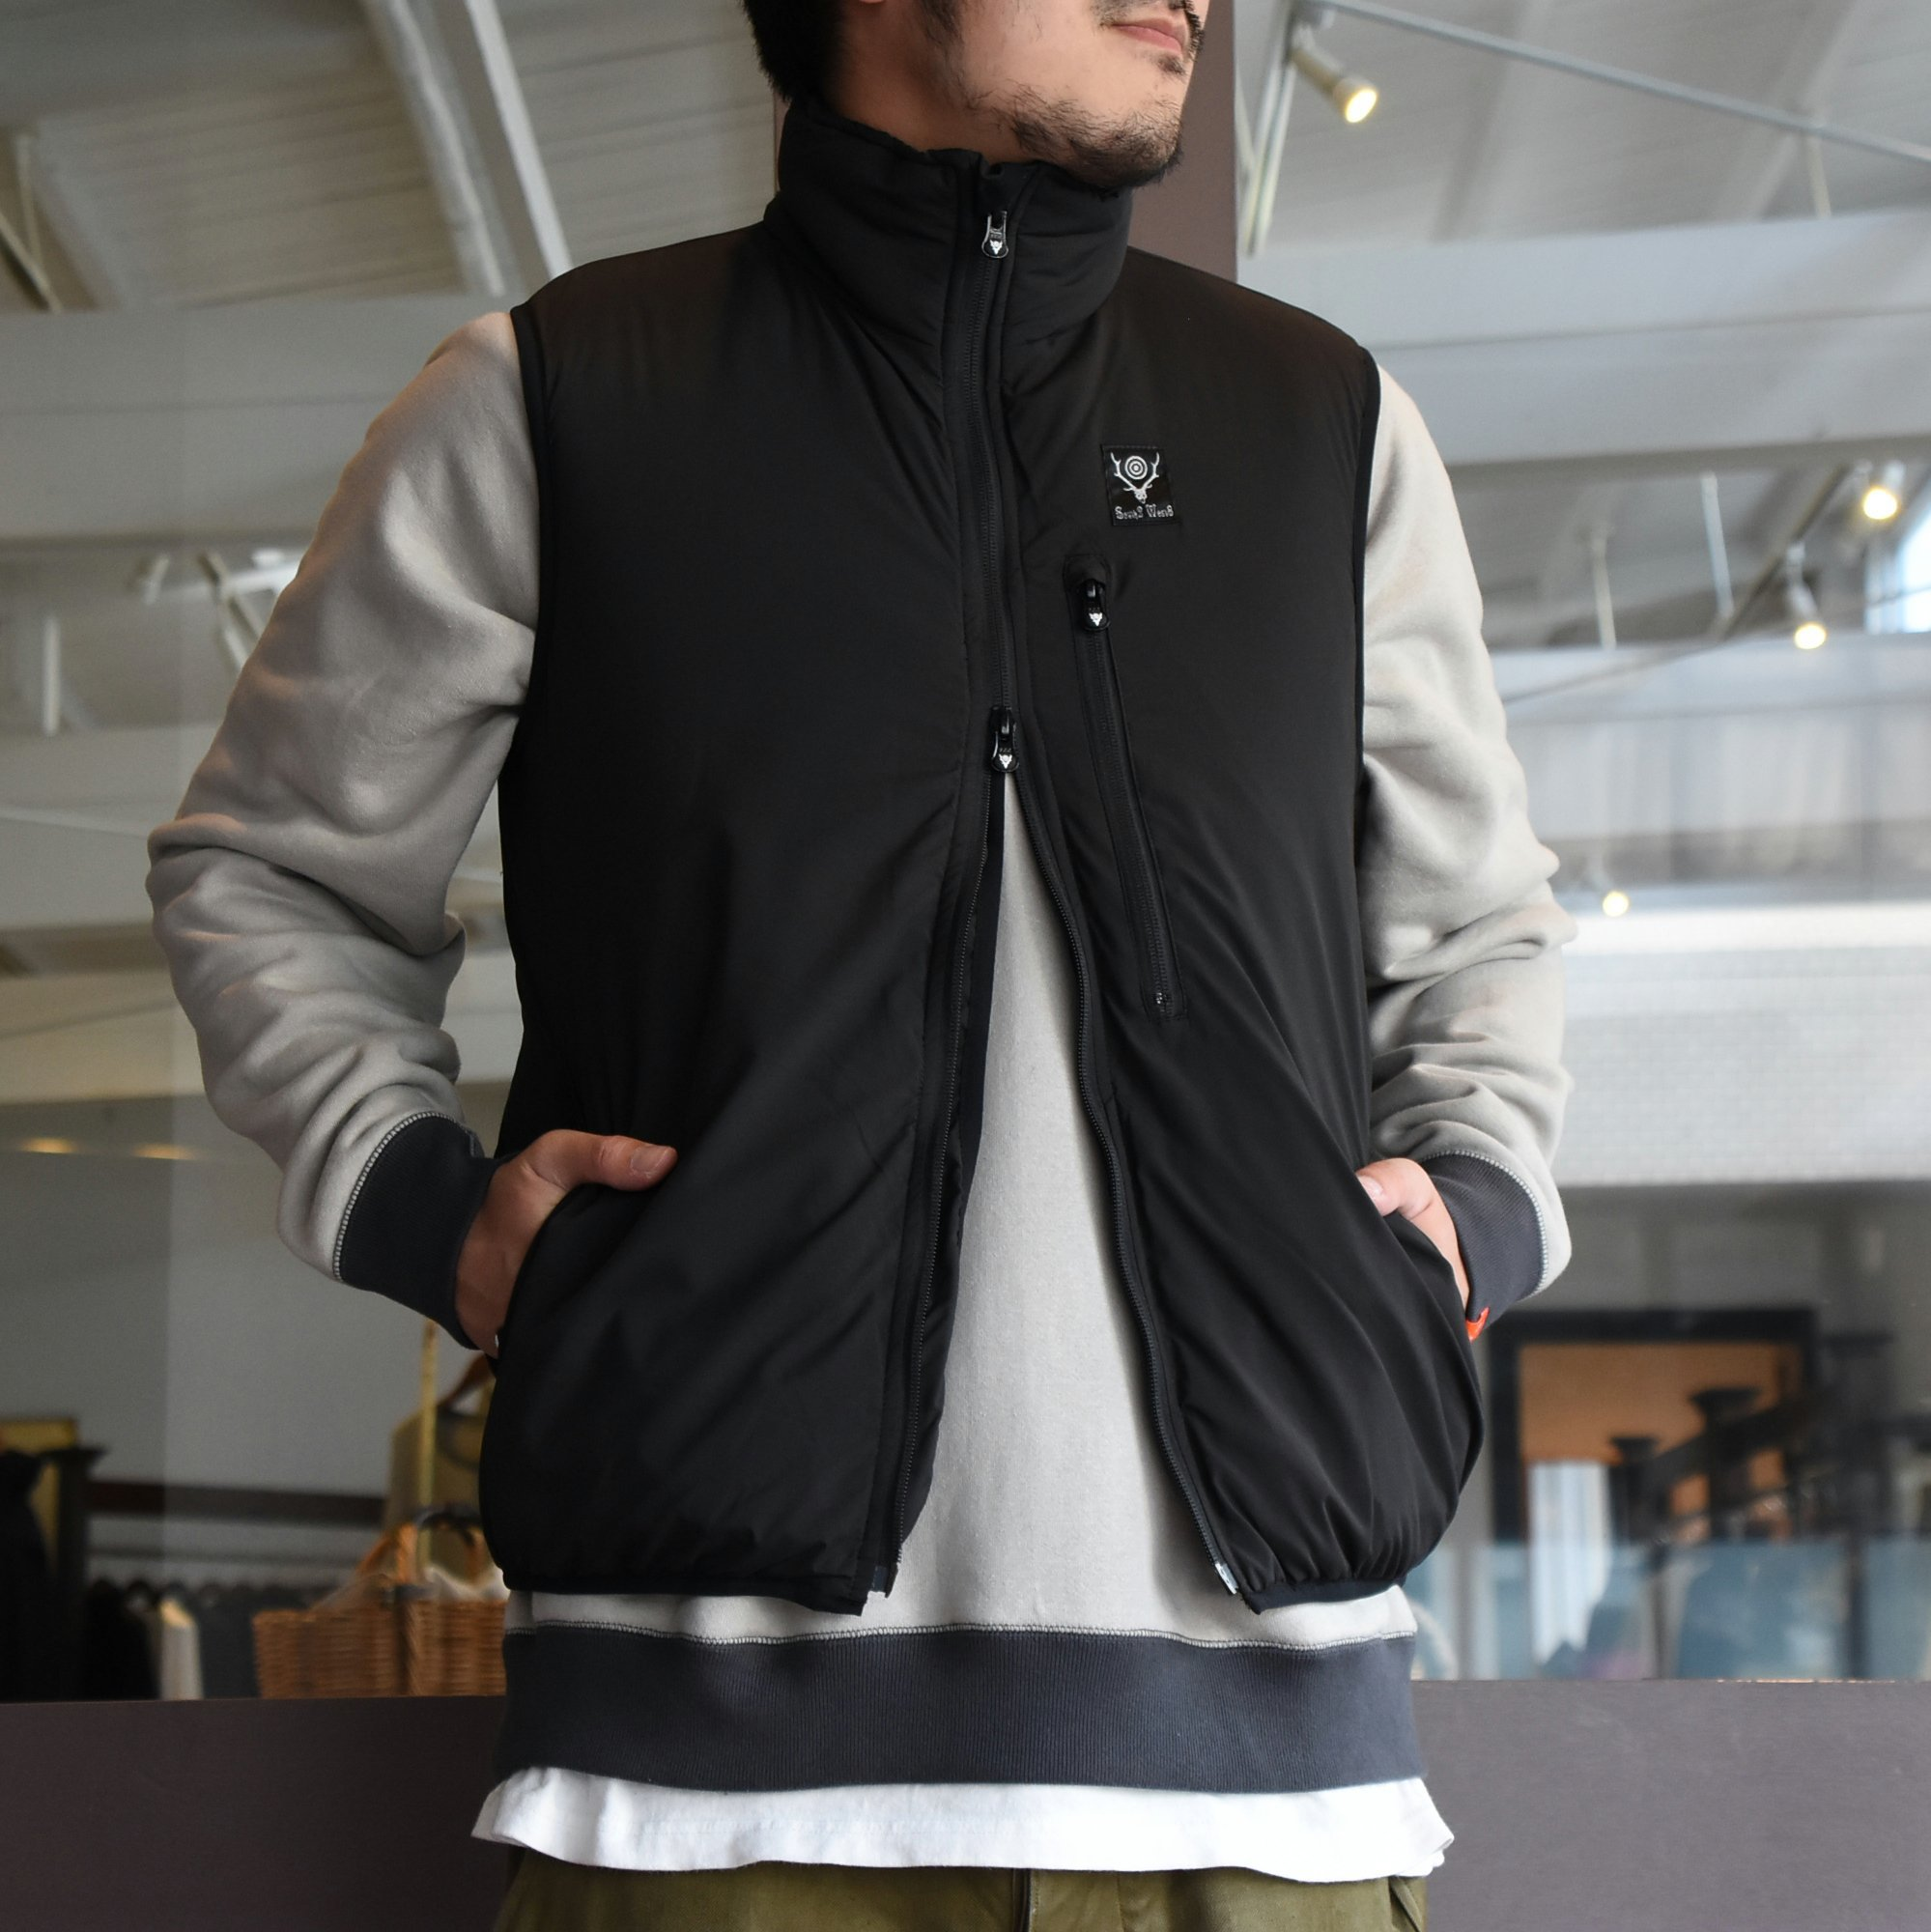 【2020】South2 West8(サウスツーウエストエイト)Insulator Vest-Peach Skin-BLACK- #HM813(2)